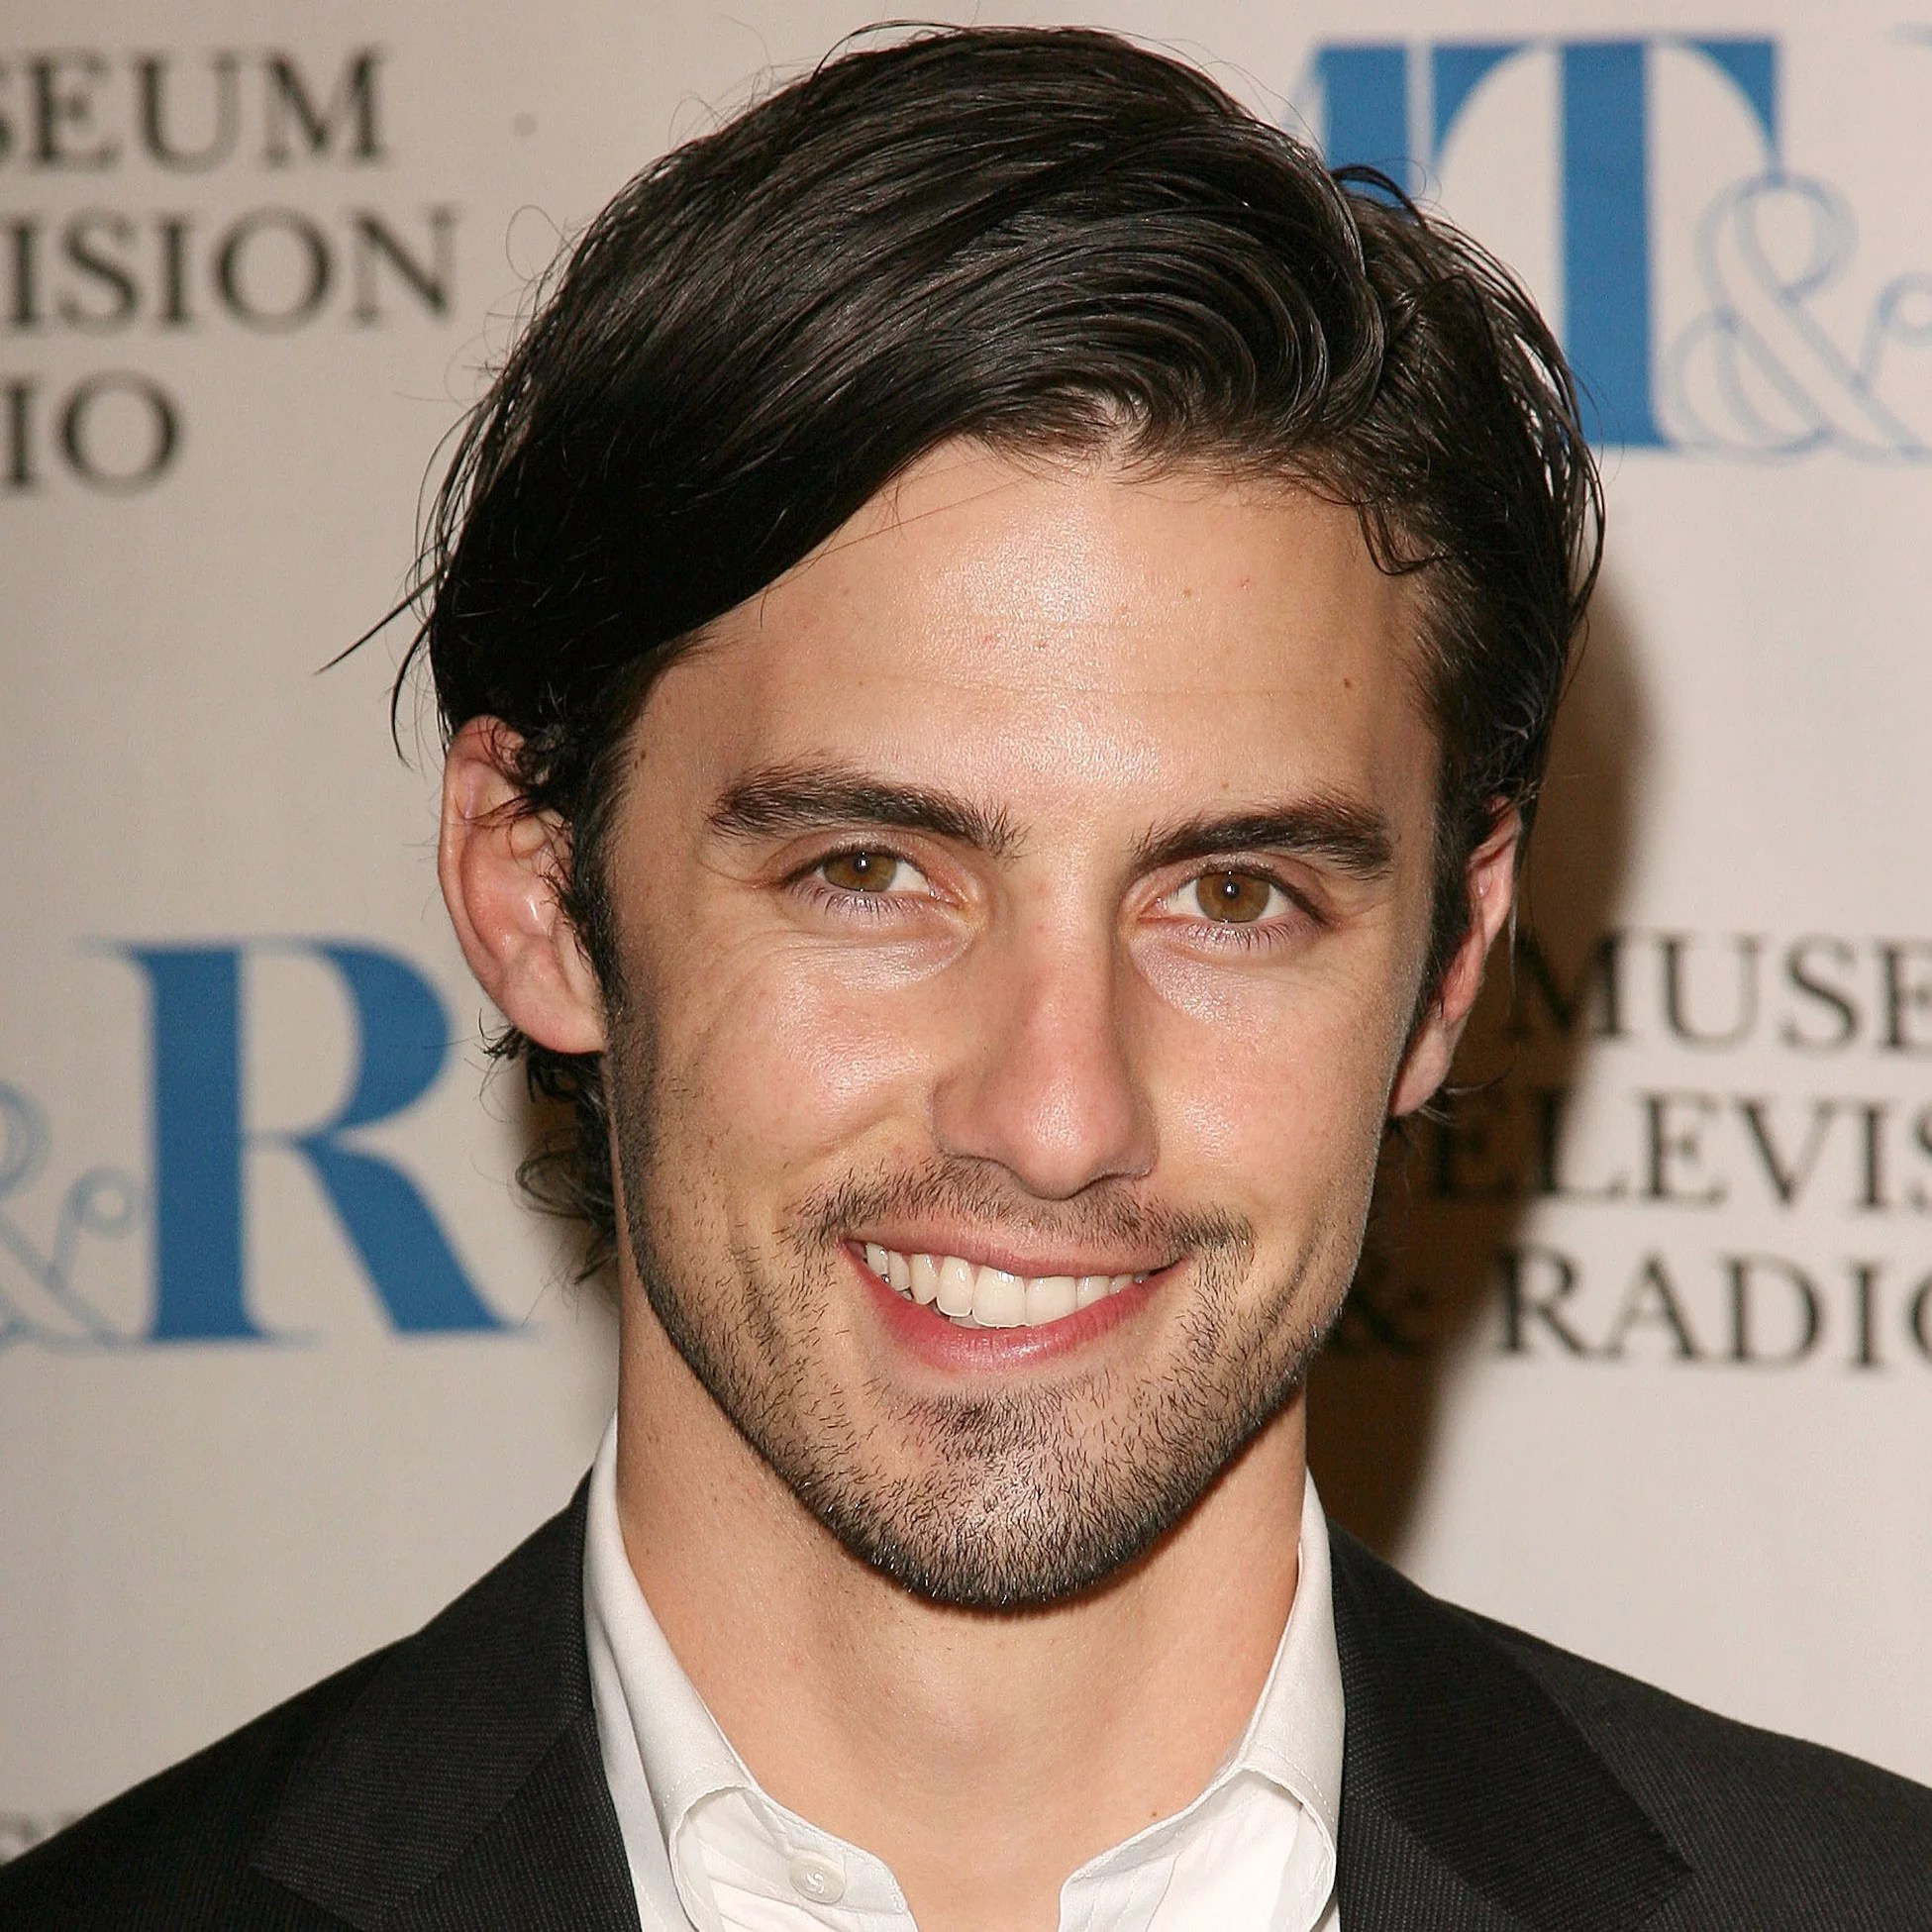 Sexy Pictures of Milo Ventimiglia Smiling   POPSUGAR Celebrity